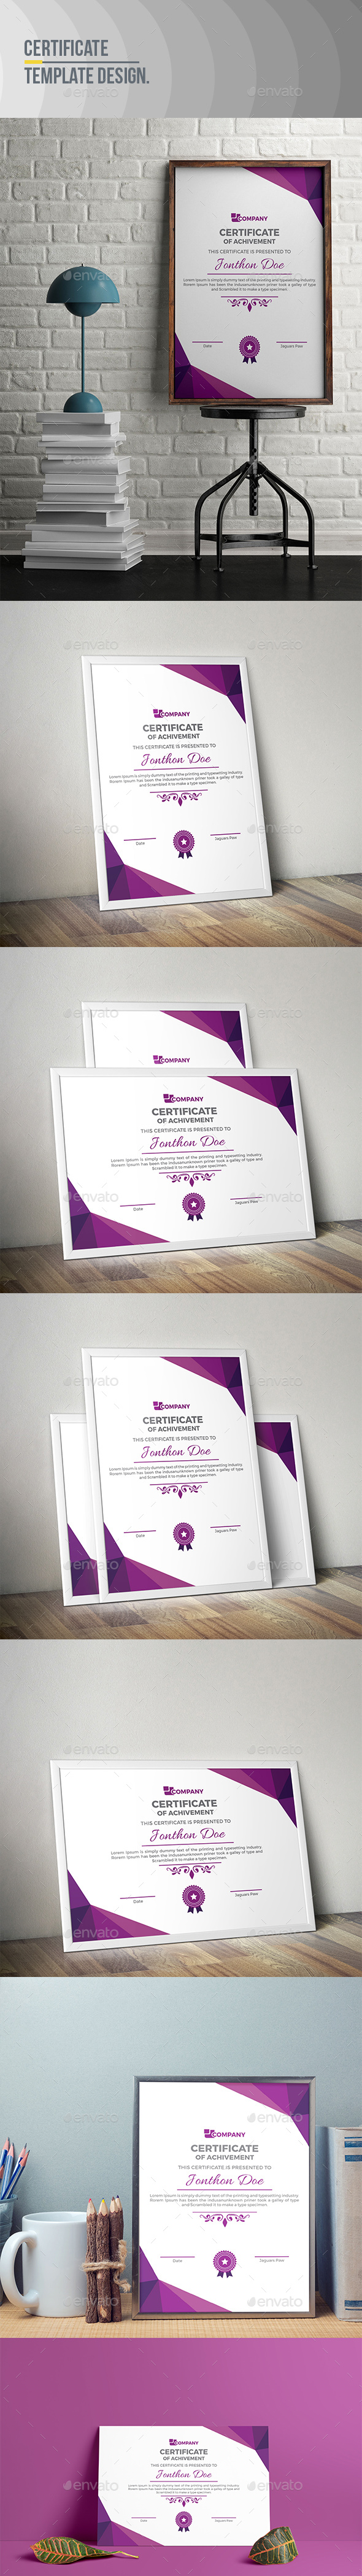 GraphicRiver Certificate Template 20496473